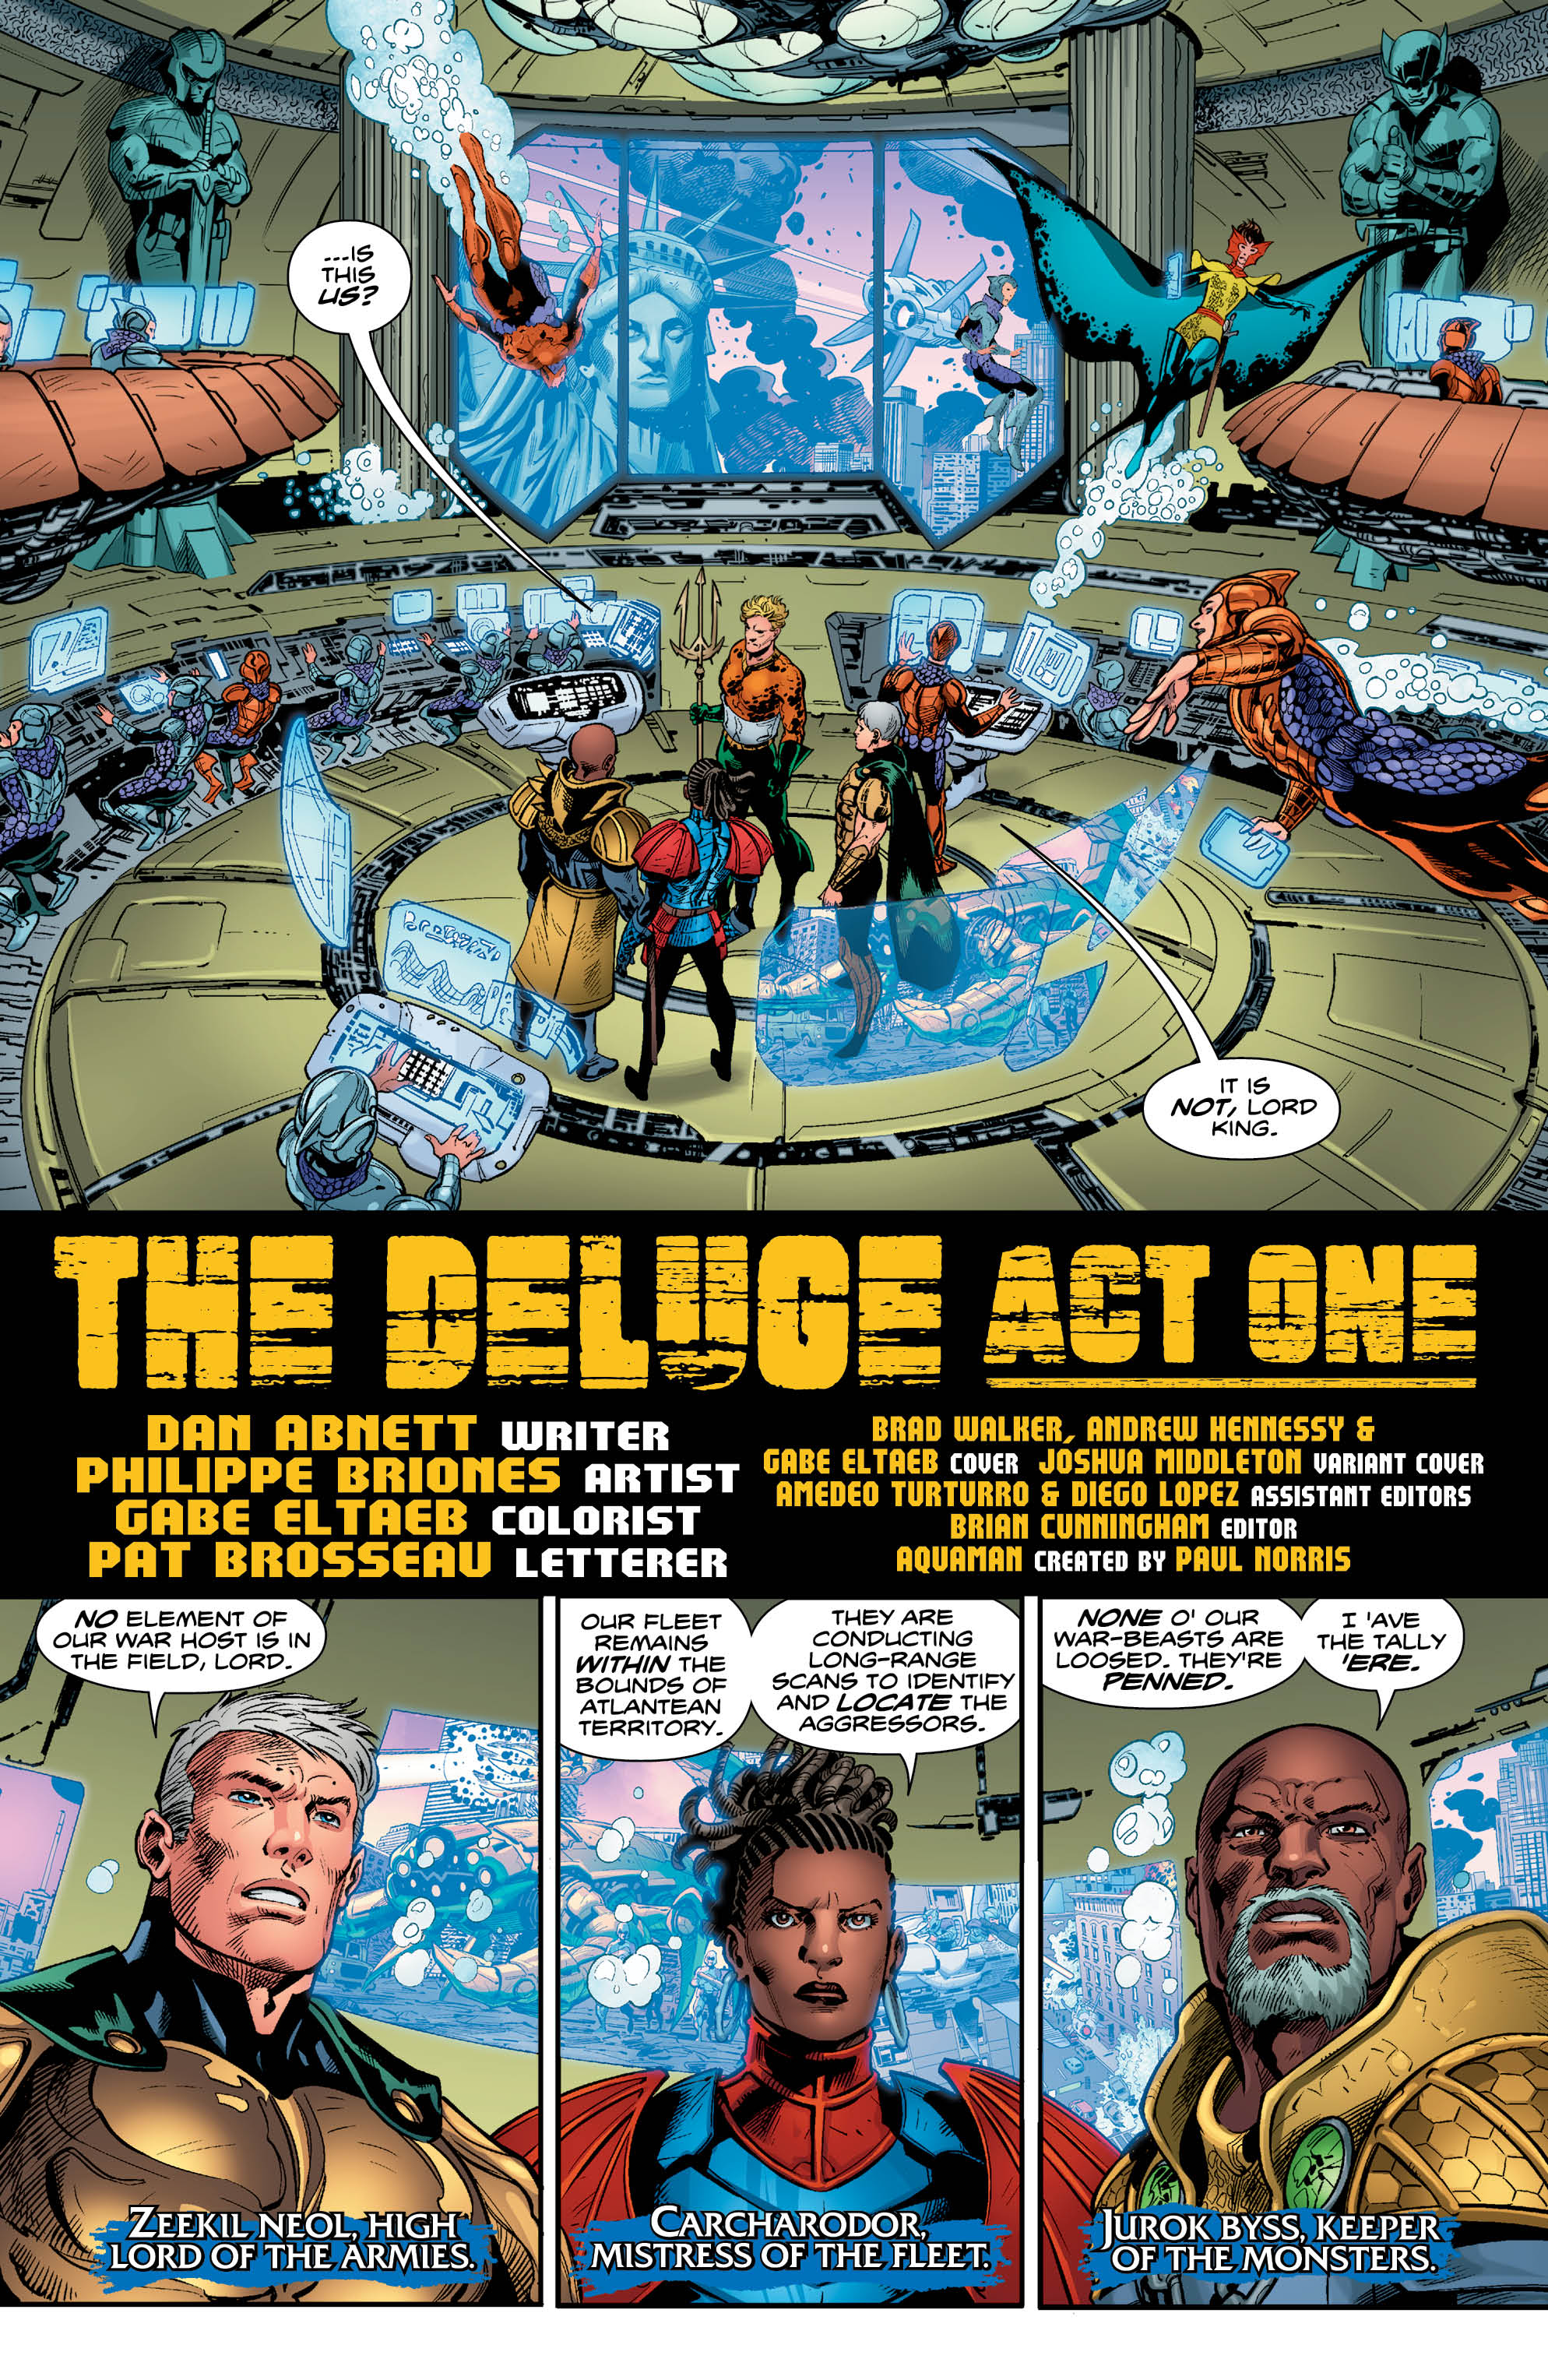 Lu: One Interesting Thing About Your Run On Aquaman Is That The Current  Storyline Echoes The Real World Perception That Our Governing Institutions  Are No